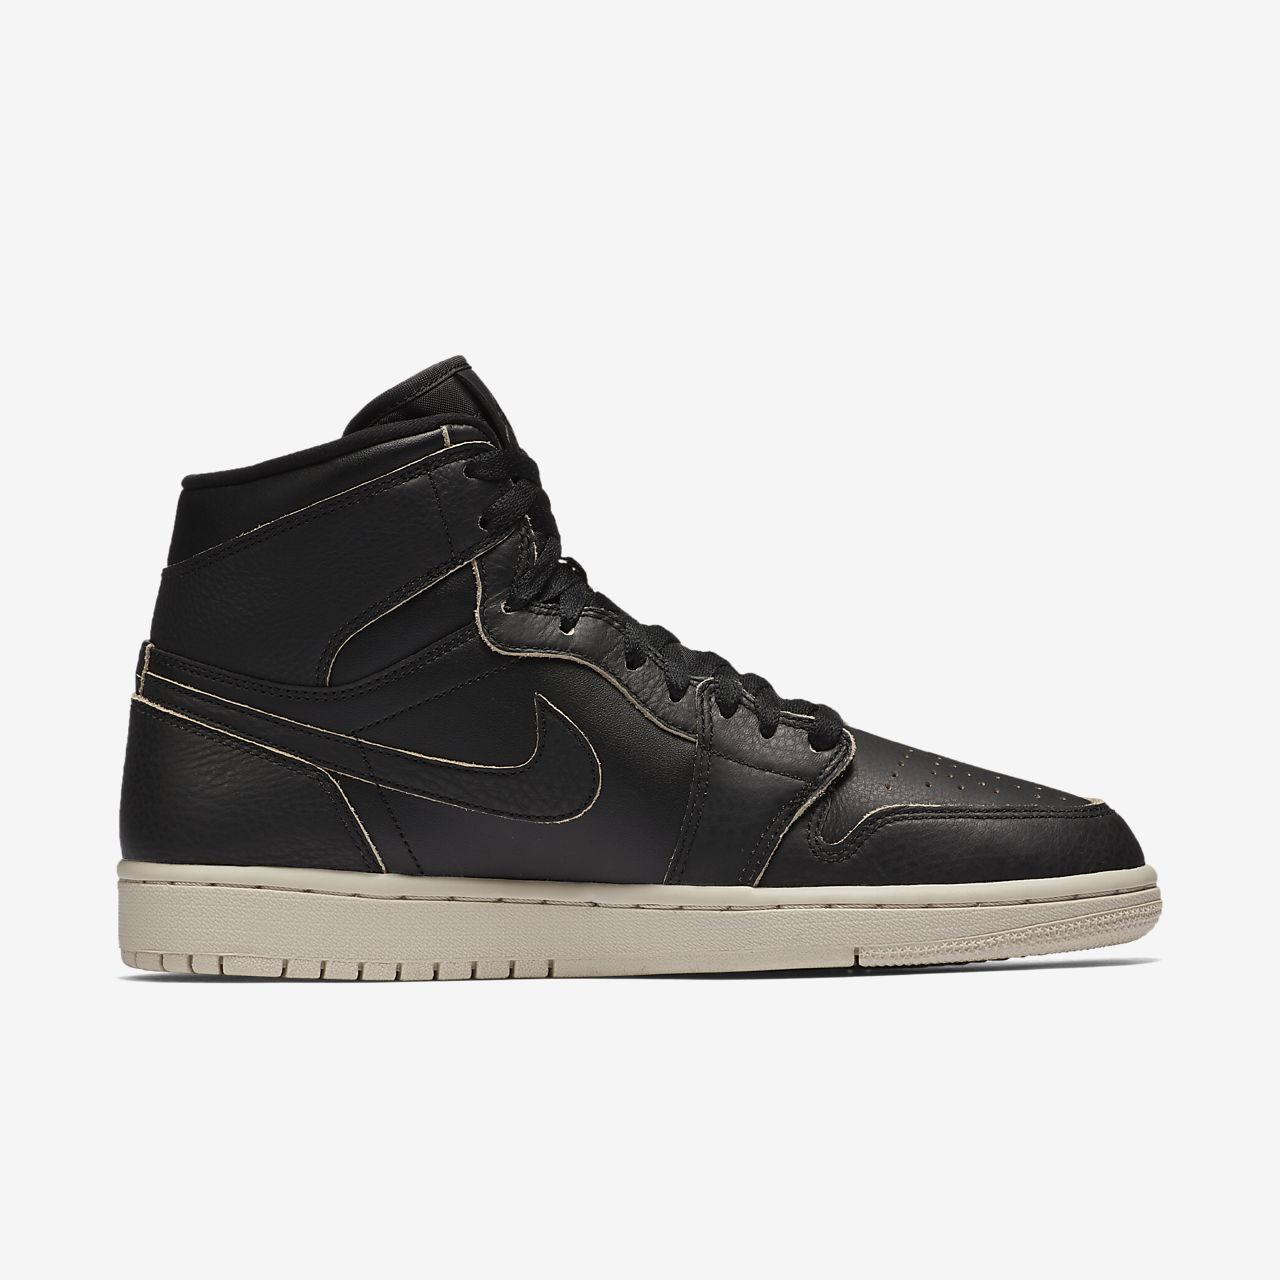 jordans 1 retro high nz